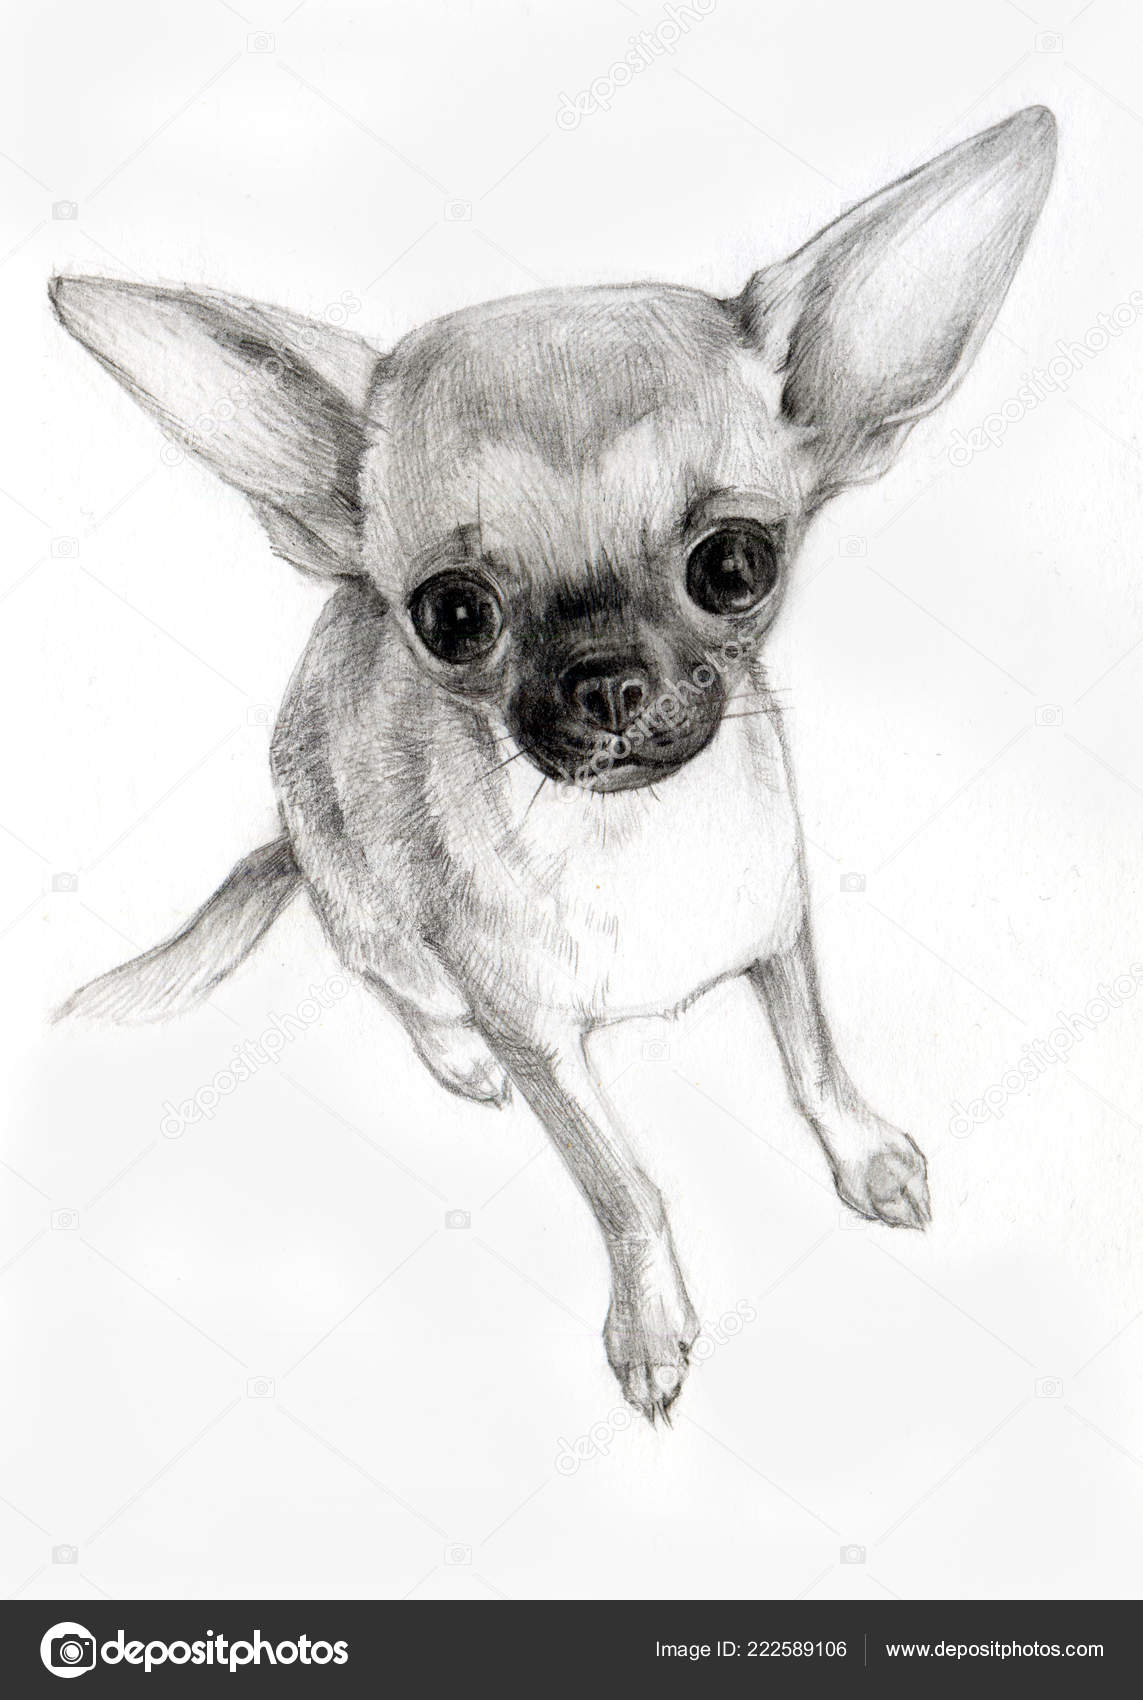 Black White Pencil Drawing Paper Dog Small Pet Chihuahua Puppy Stock Photo C Kdegtiareva Mail Ru 222589106